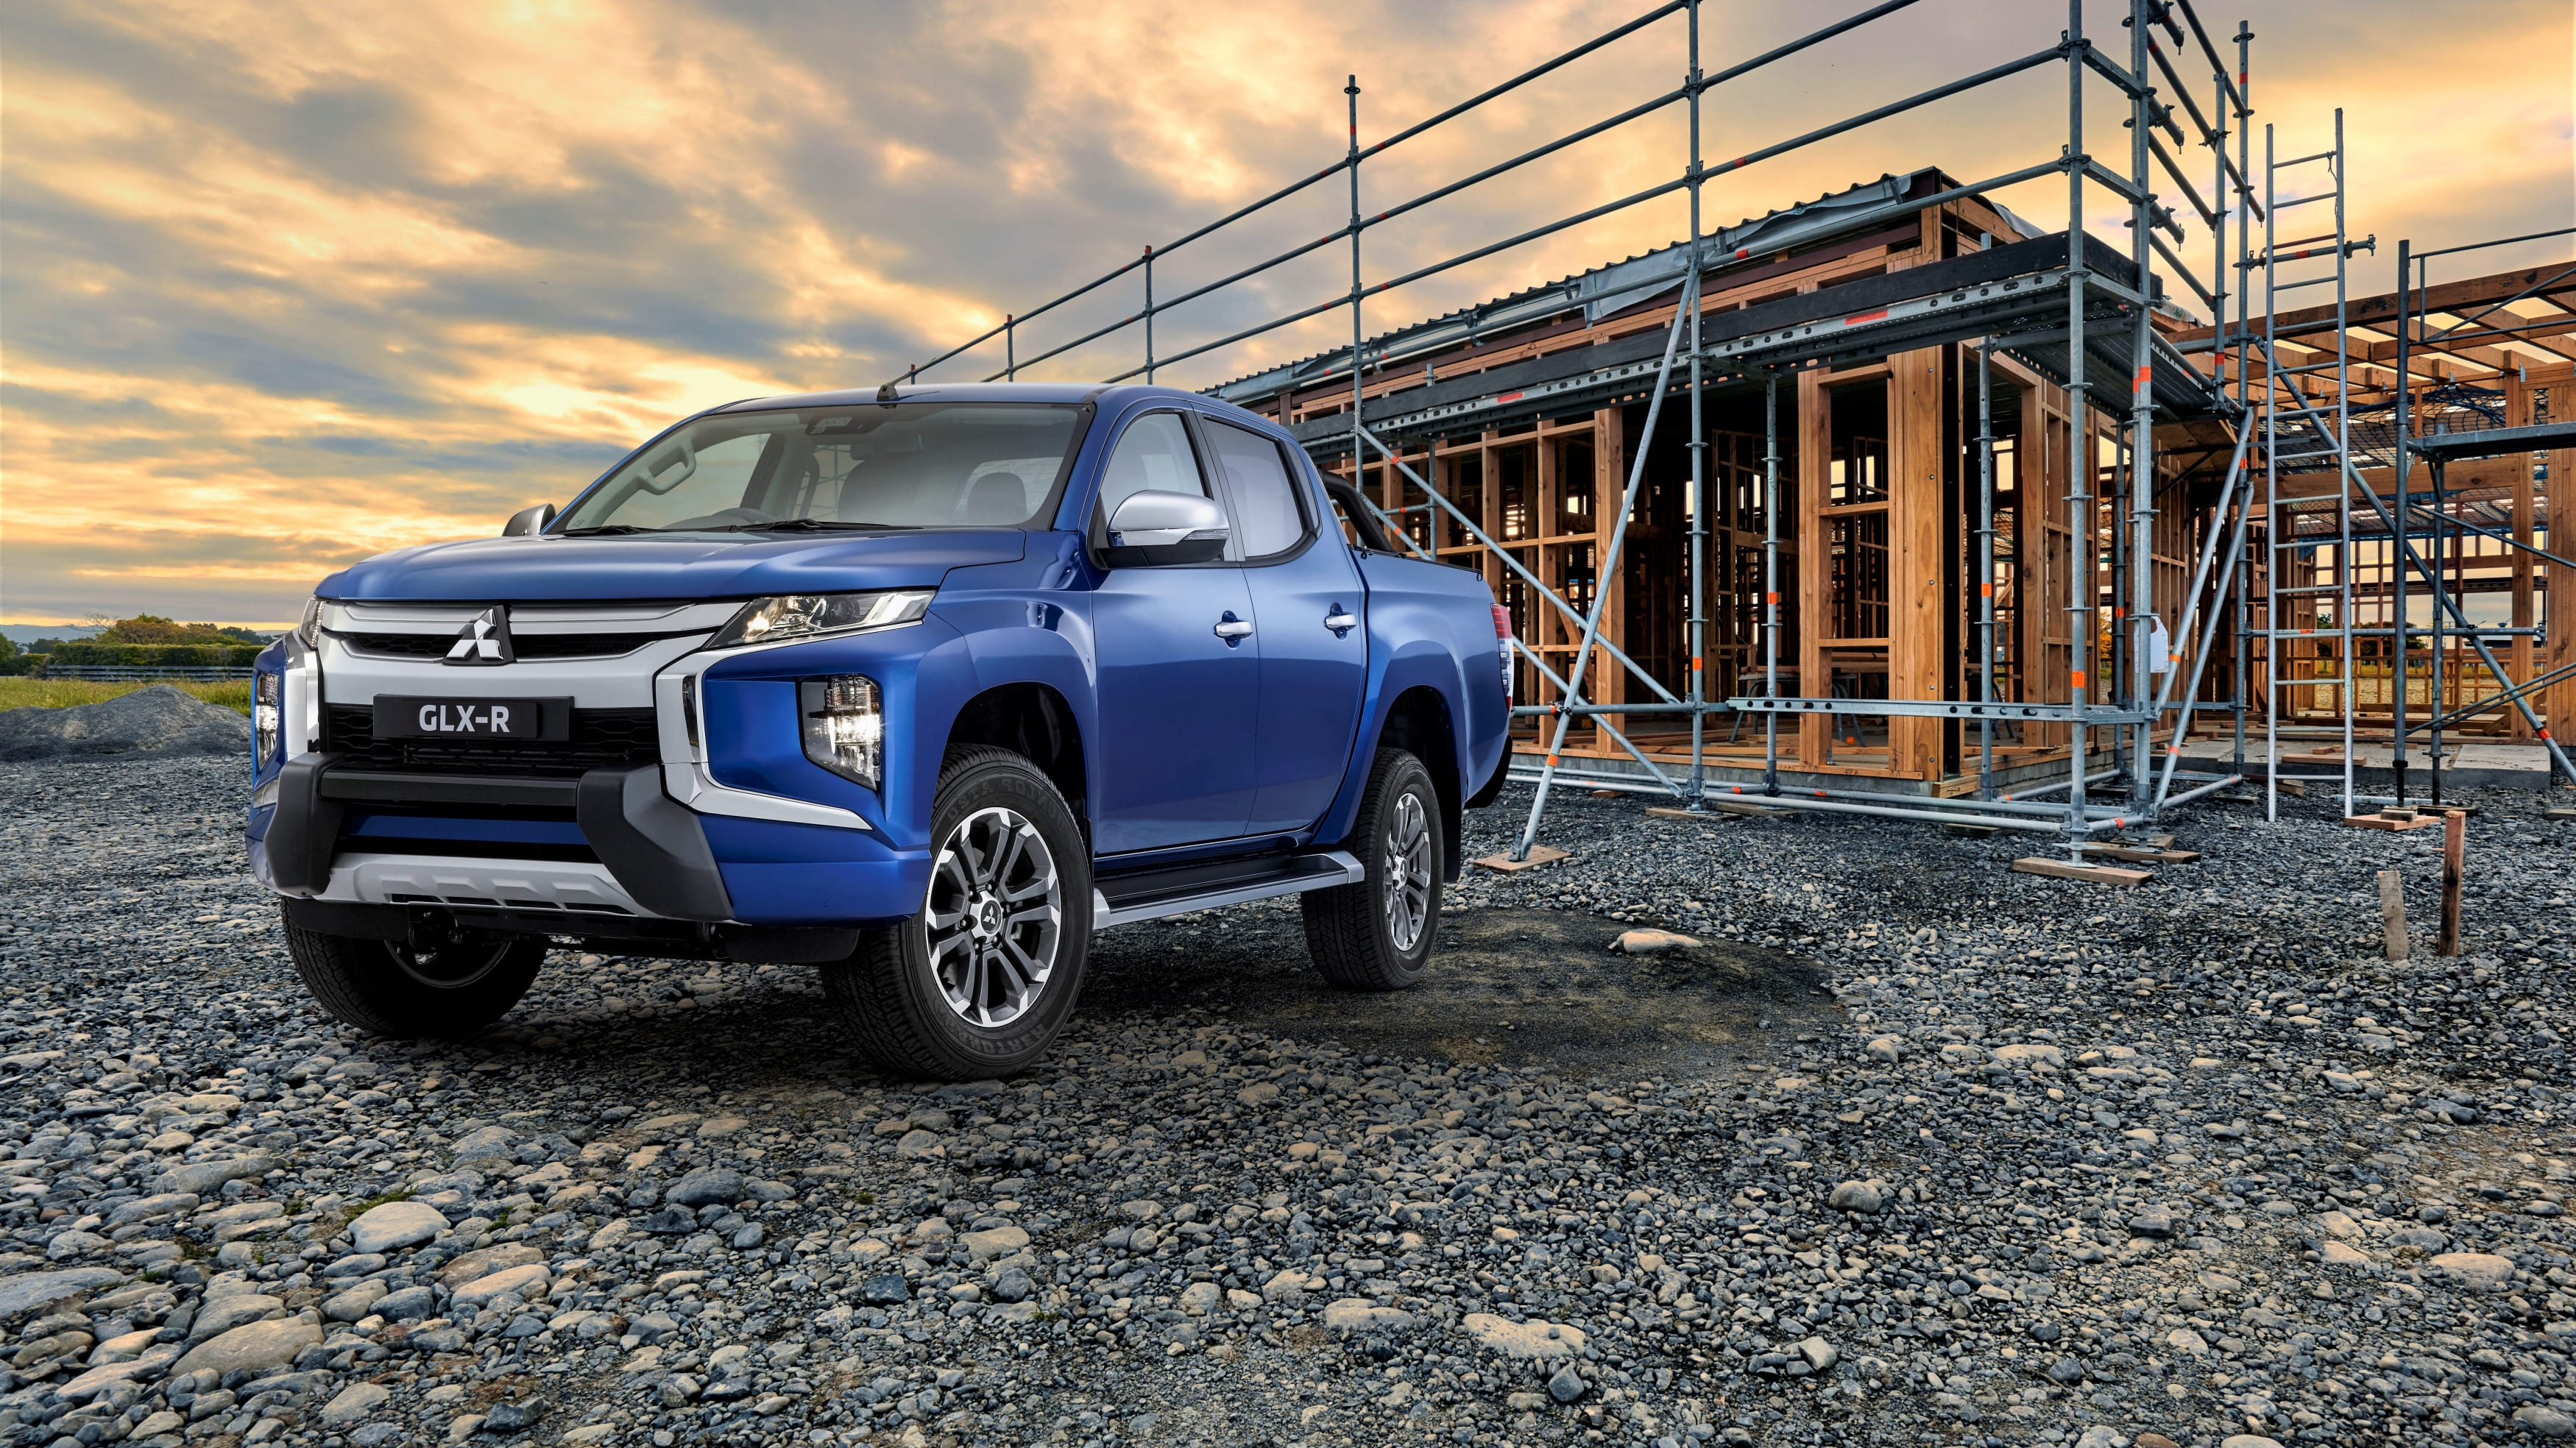 Mitsubishi Triton 2021: No Ford Ranger Raptor rival after all?